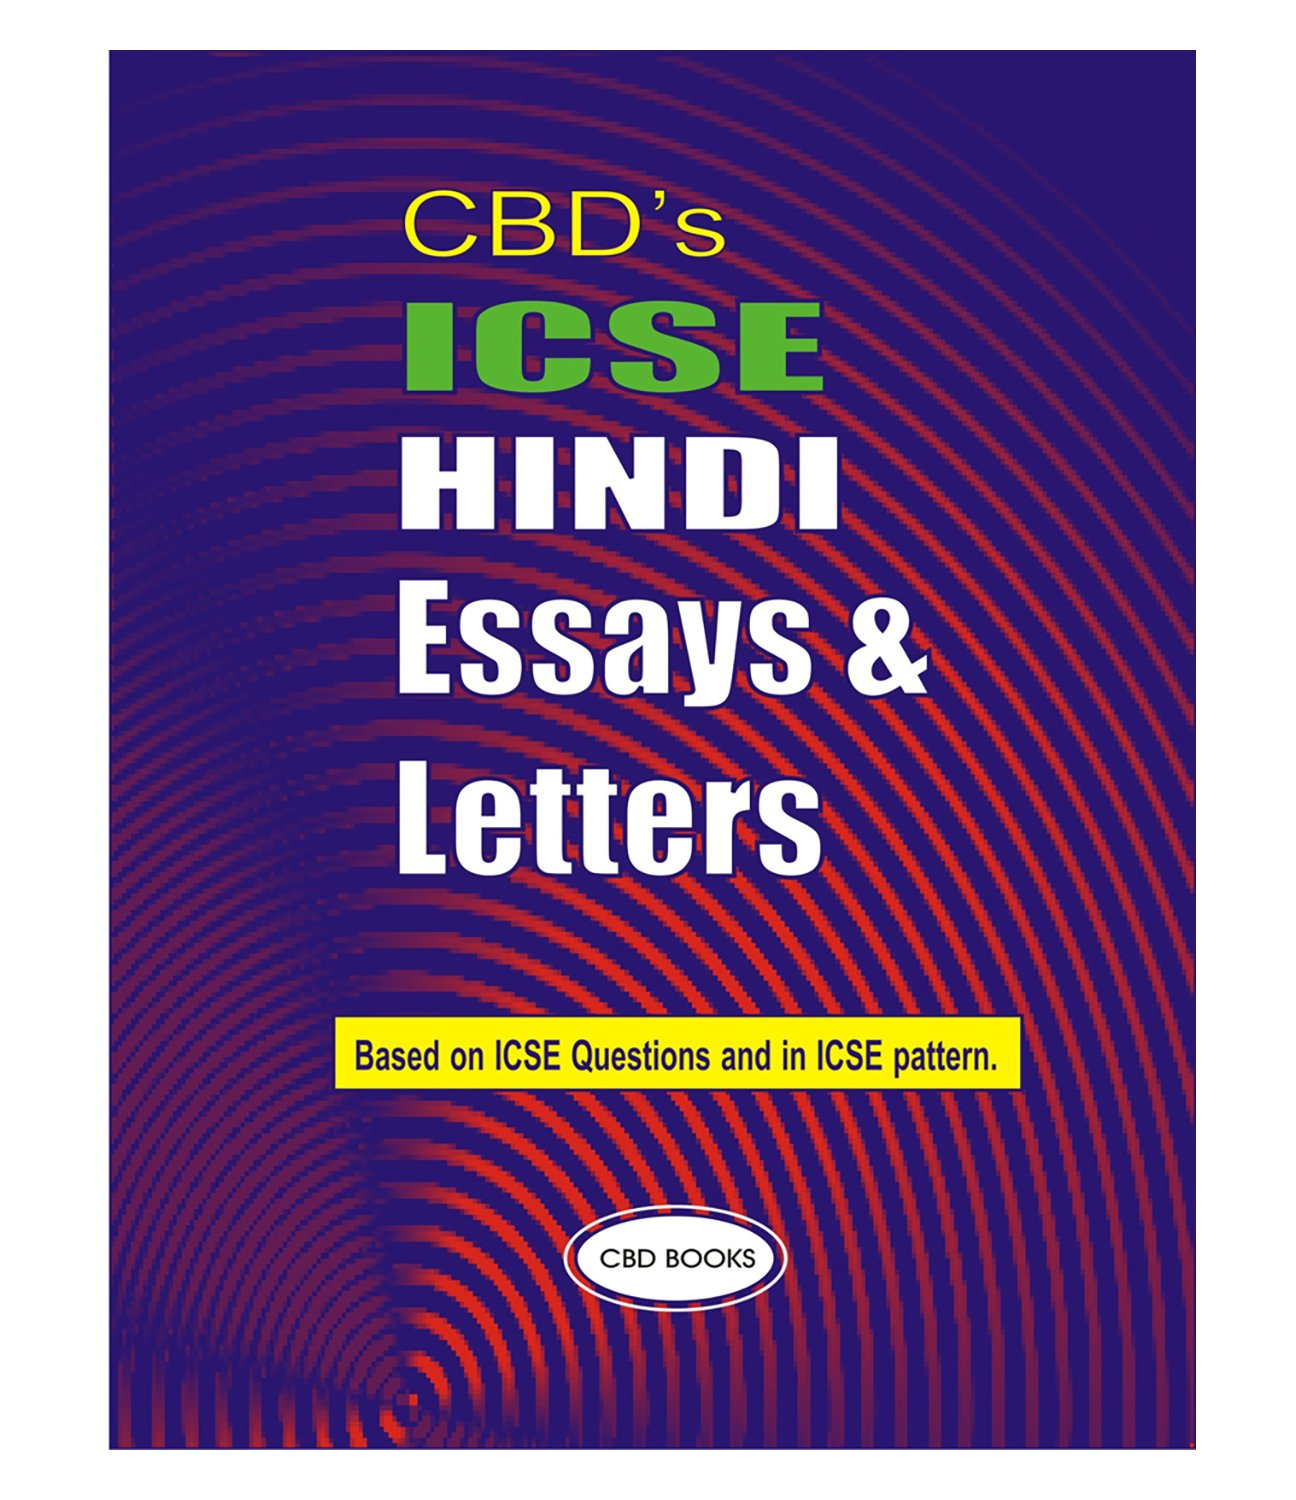 Essay Paper Writing Services Amazonin Buy Icse Hindi Essays  Letters Hindi Book Online At Low  Prices In India  Icse Hindi Essays  Letters Hindi Reviews  Ratings Buy Essays Papers also Fahrenheit 451 Essay Thesis Amazonin Buy Icse Hindi Essays  Letters Hindi Book Online At  Science And Literature Essay